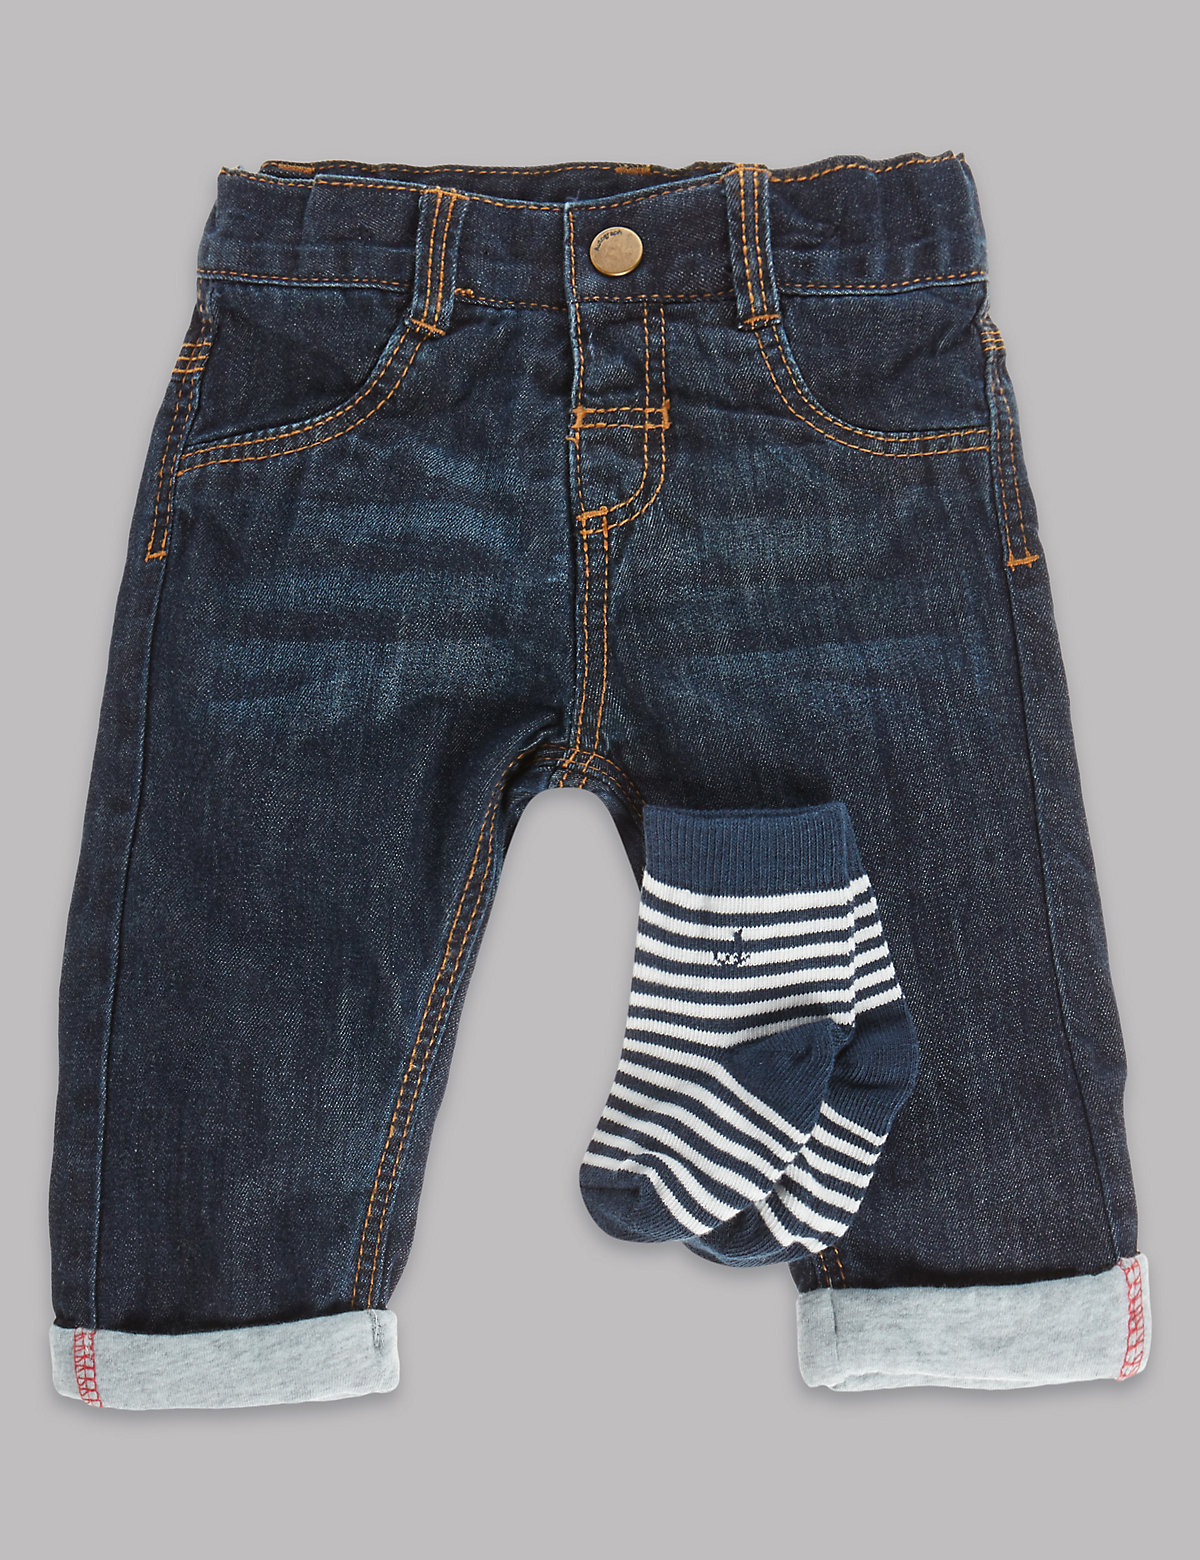 Autograph Pure Cotton Denim Jeans with Socks